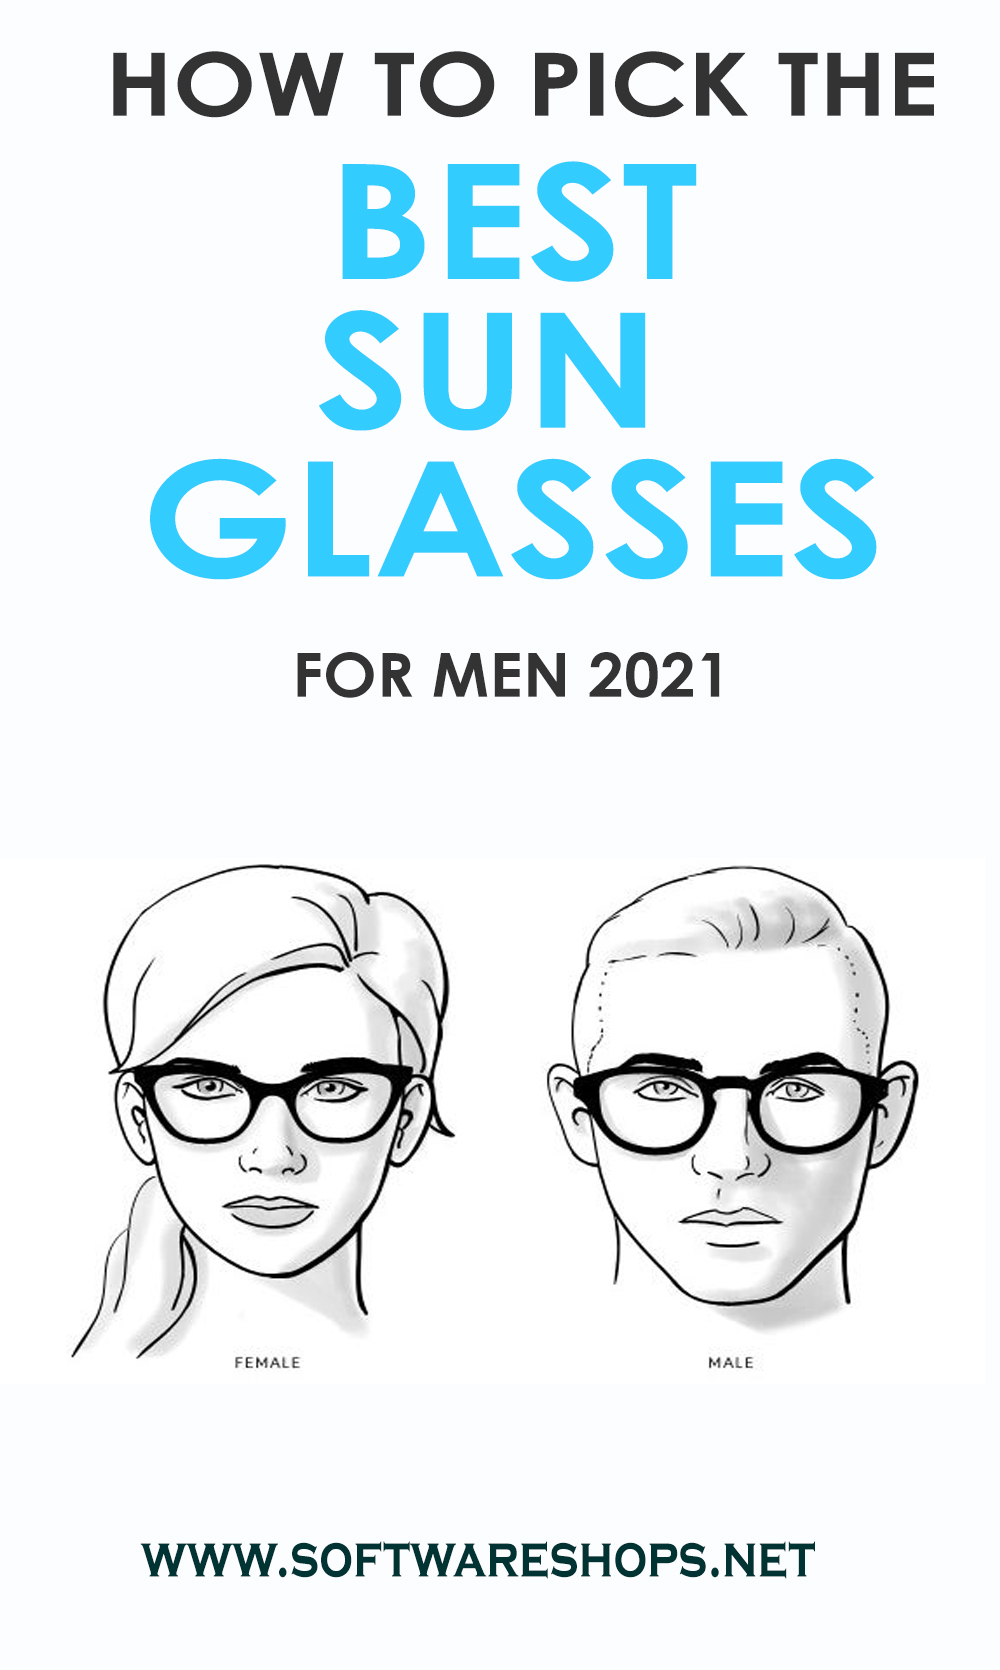 how to pick the best sun glasses for men